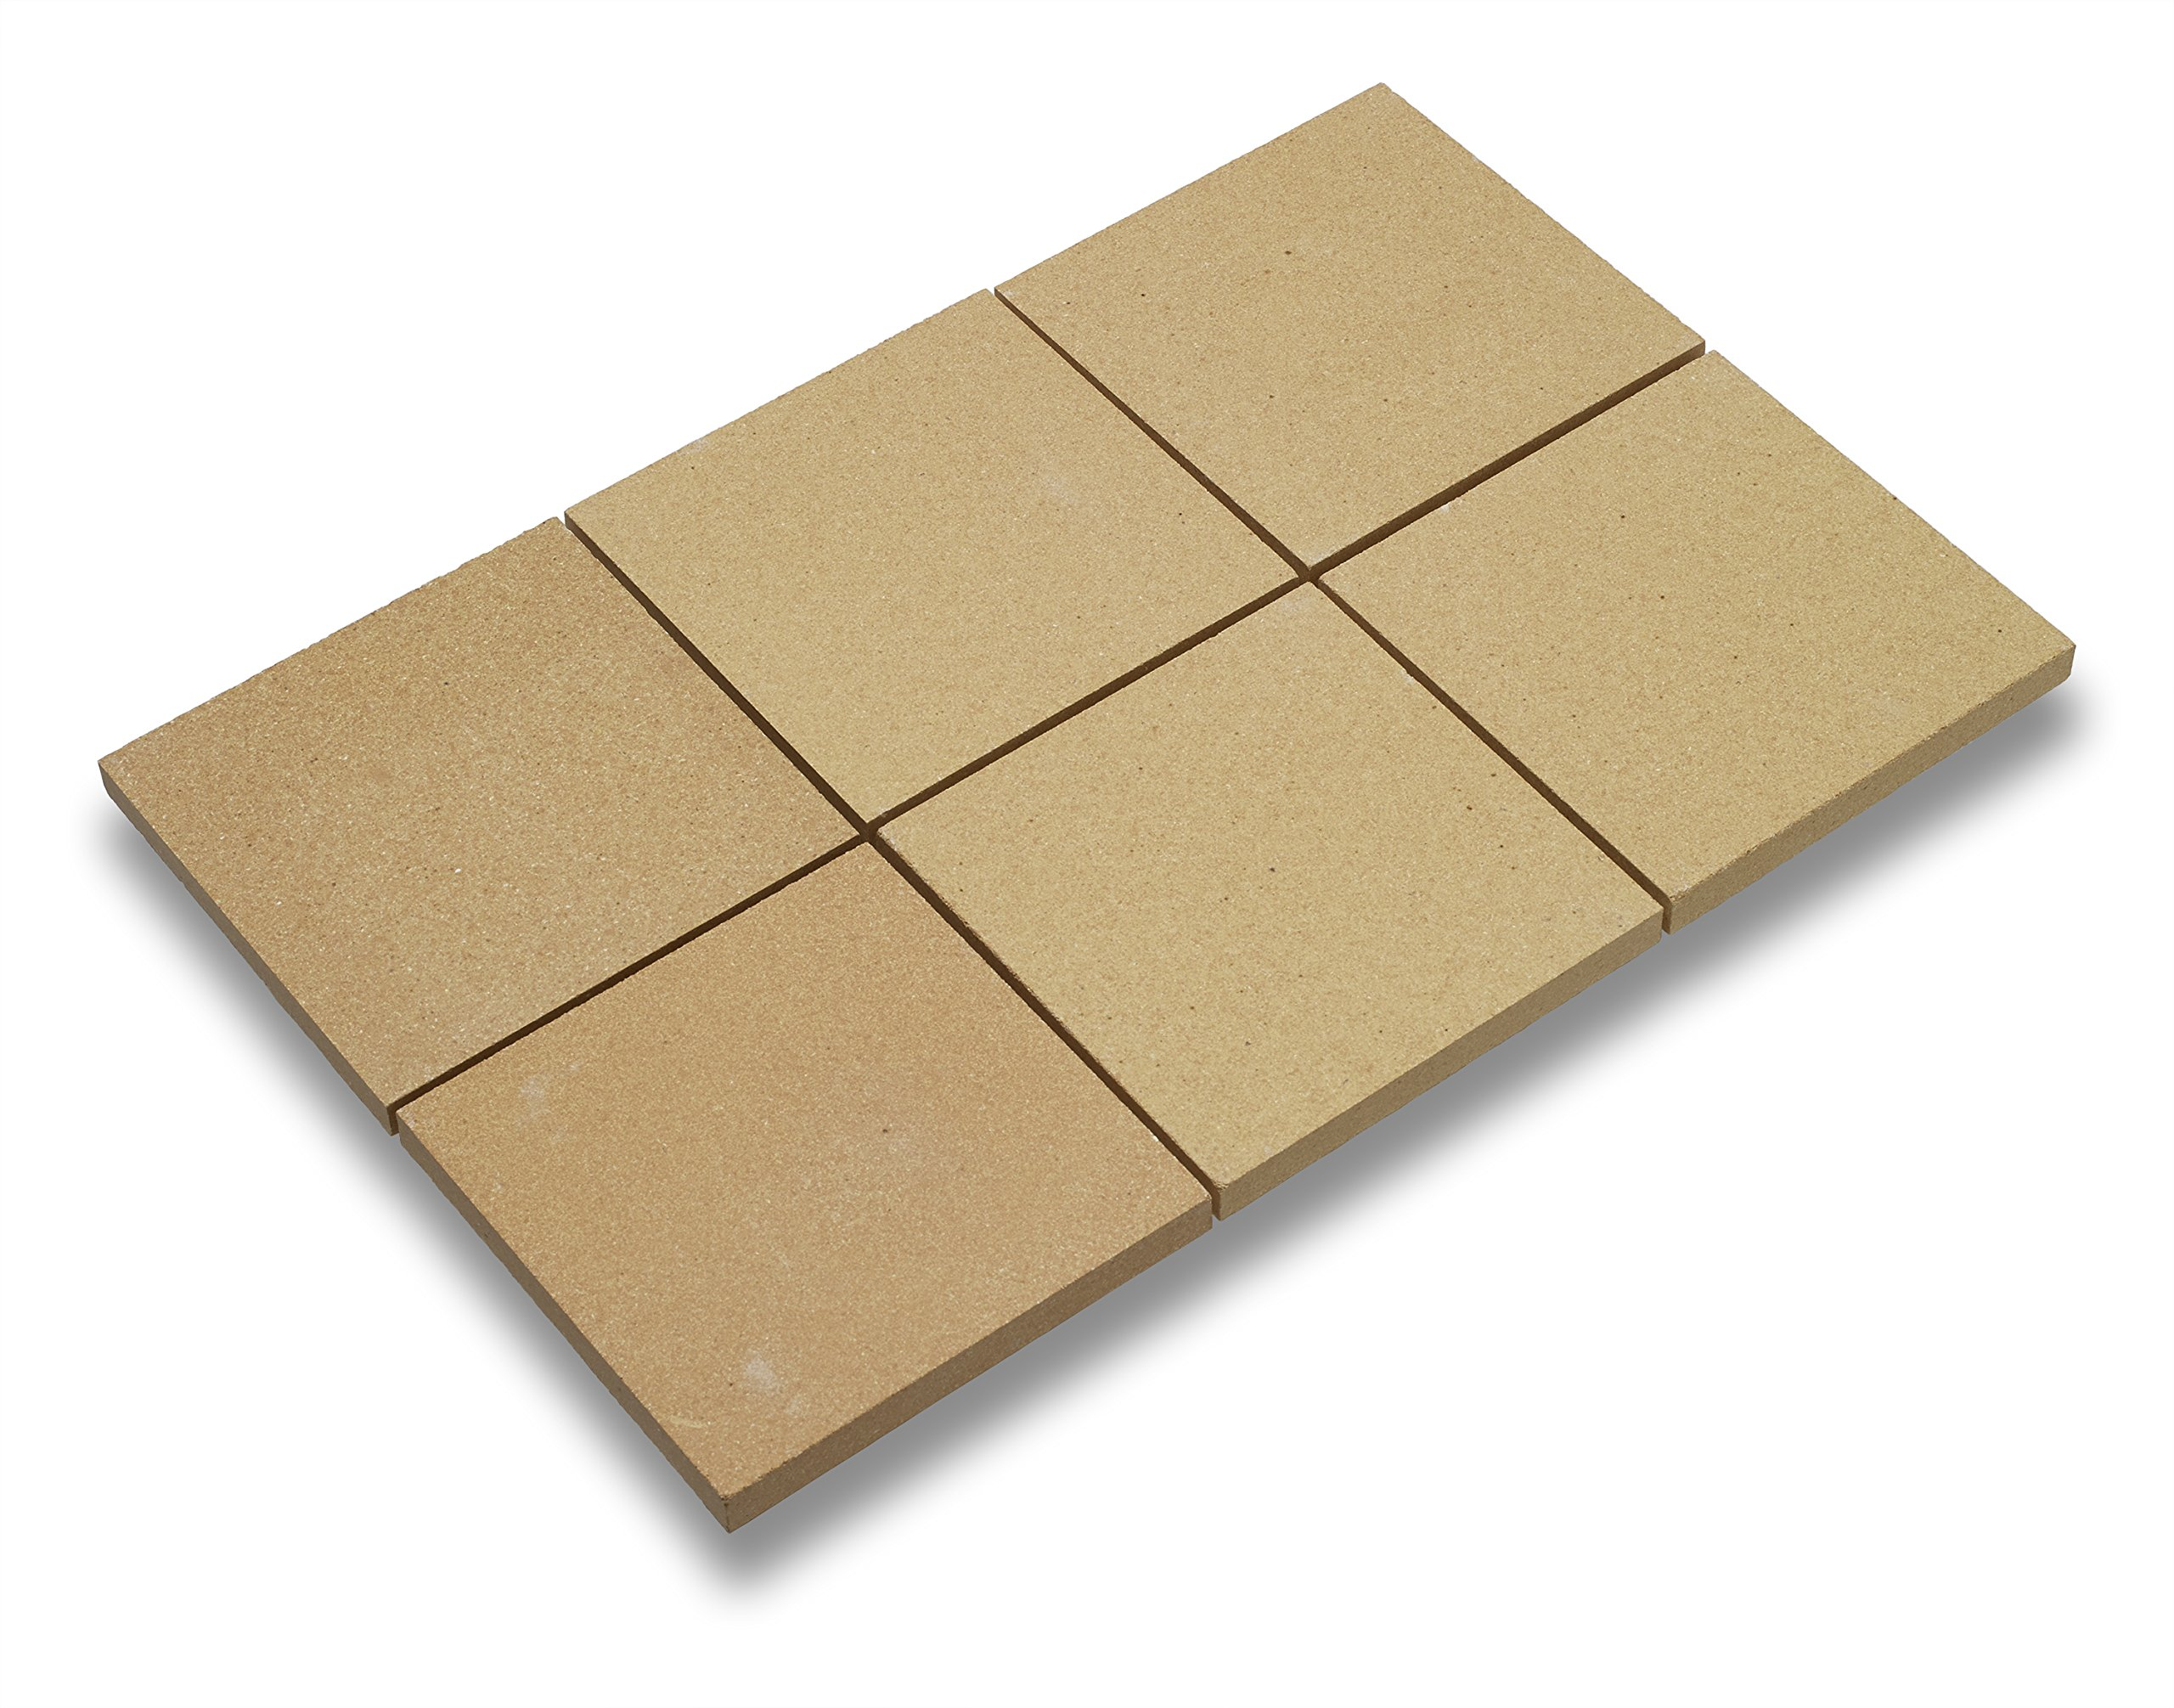 Kitchen Supply Company Kitchen Supply 4448 Old Stone Oven Baking Tiles, 6'' x 6-I Nches, Set of 6, Brown